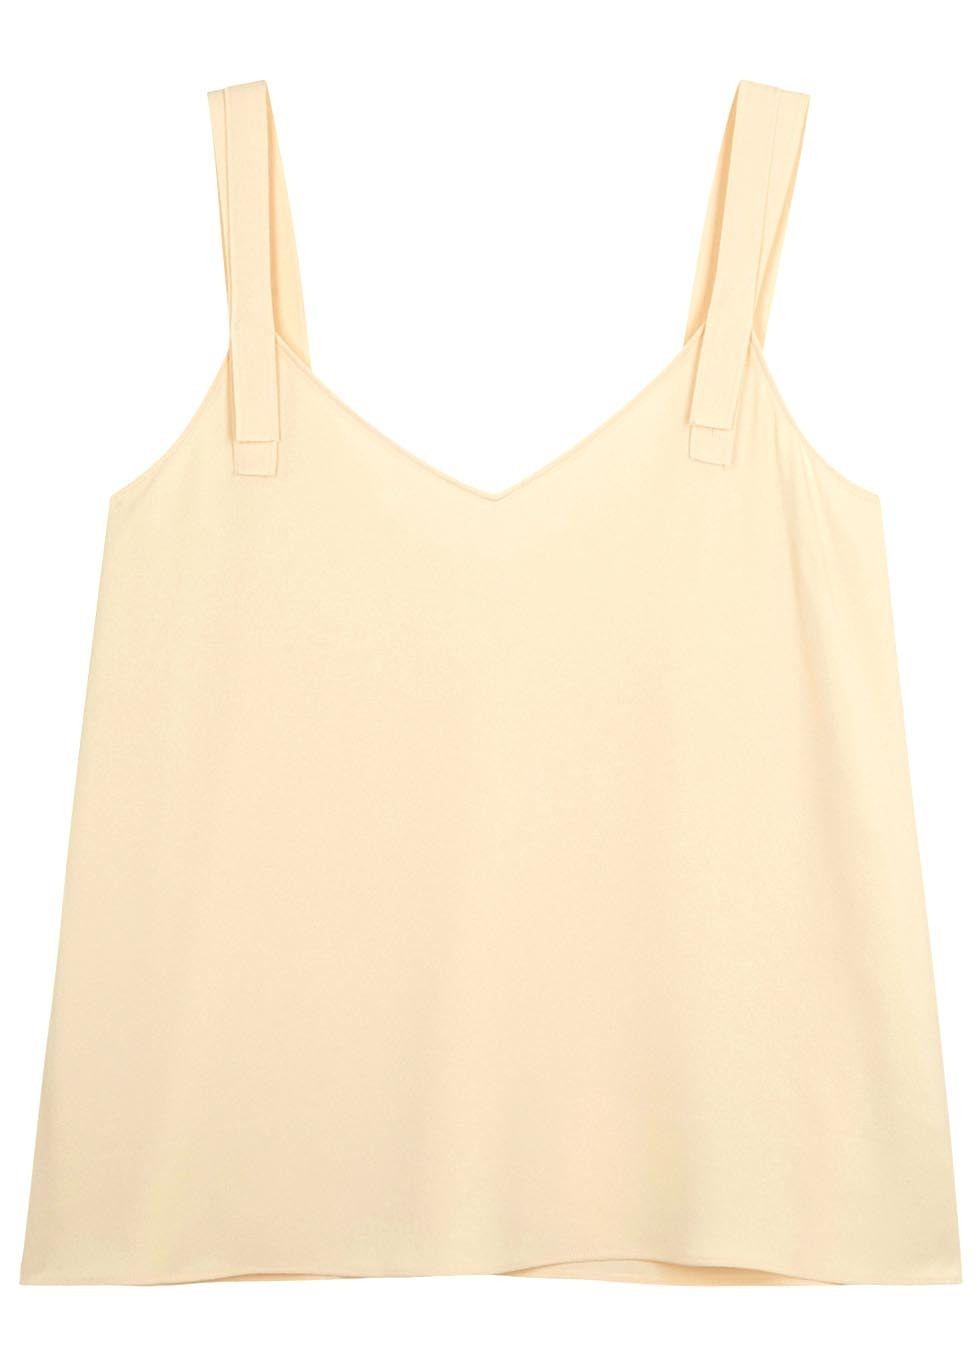 Cream Crepe Top - neckline: low v-neck; sleeve style: standard vest straps/shoulder straps; pattern: plain; predominant colour: nude; occasions: casual, holiday; length: standard; style: top; fit: body skimming; sleeve length: sleeveless; texture group: crepes; pattern type: fabric; fibres: viscose/rayon - mix; season: s/s 2016; wardrobe: basic